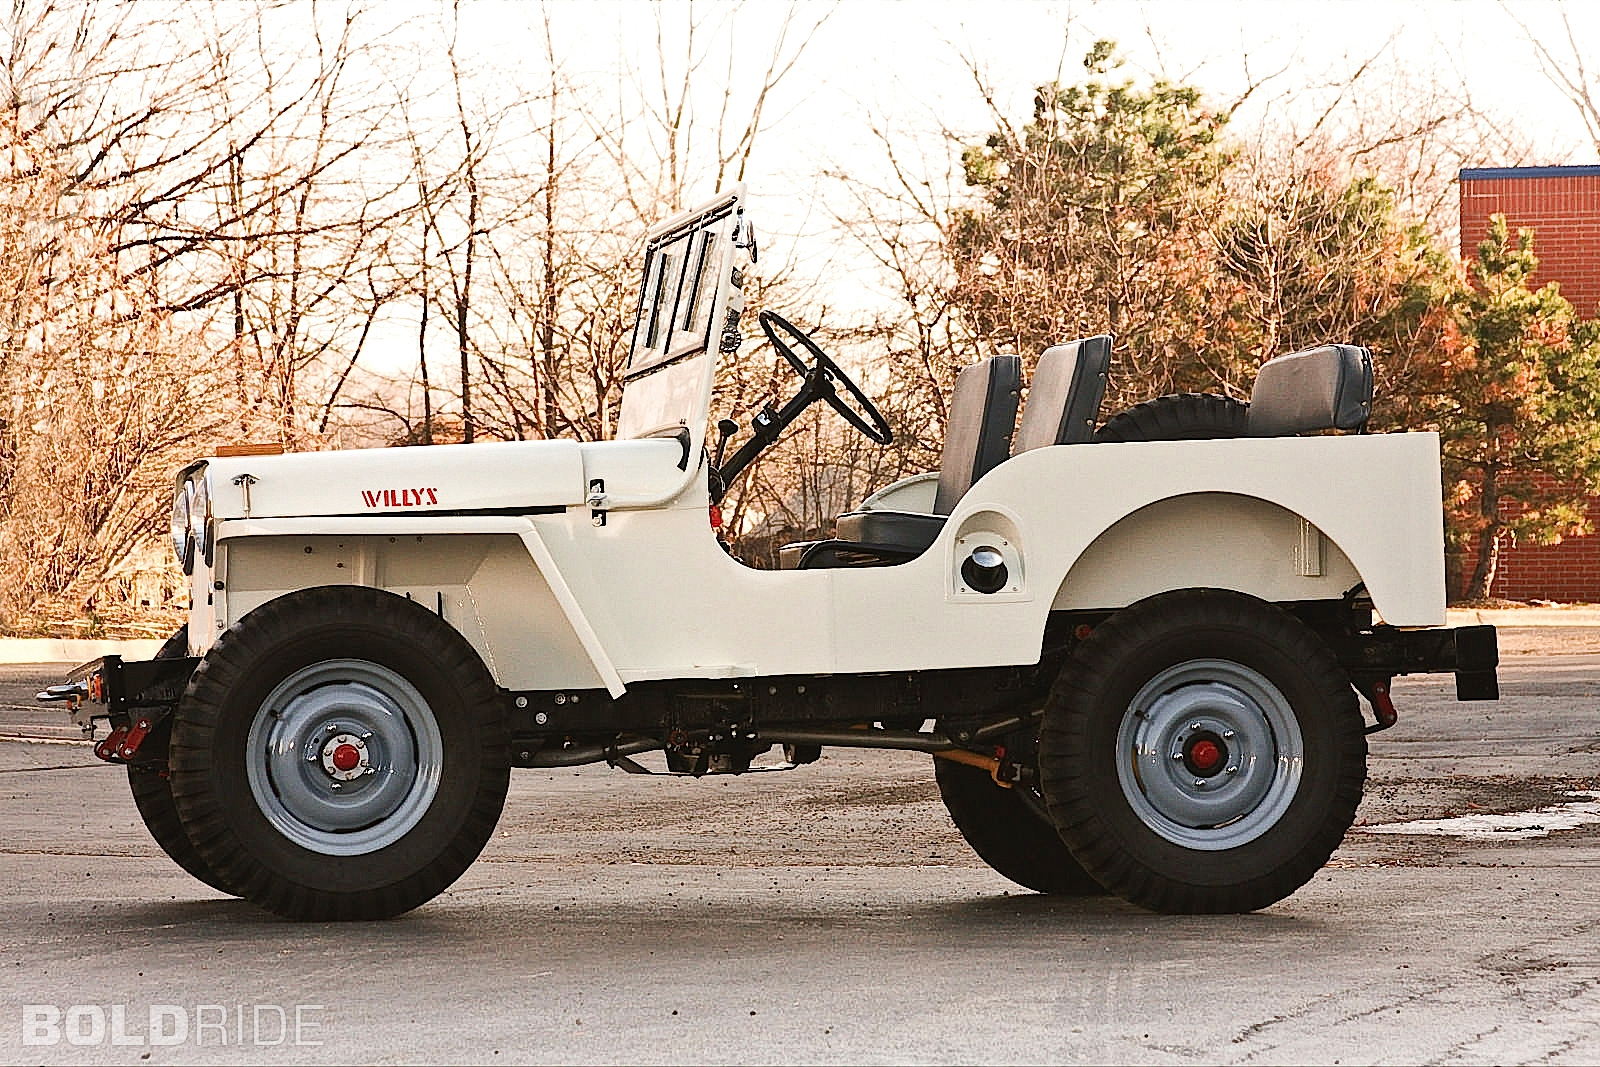 Willys jeep photo - 7